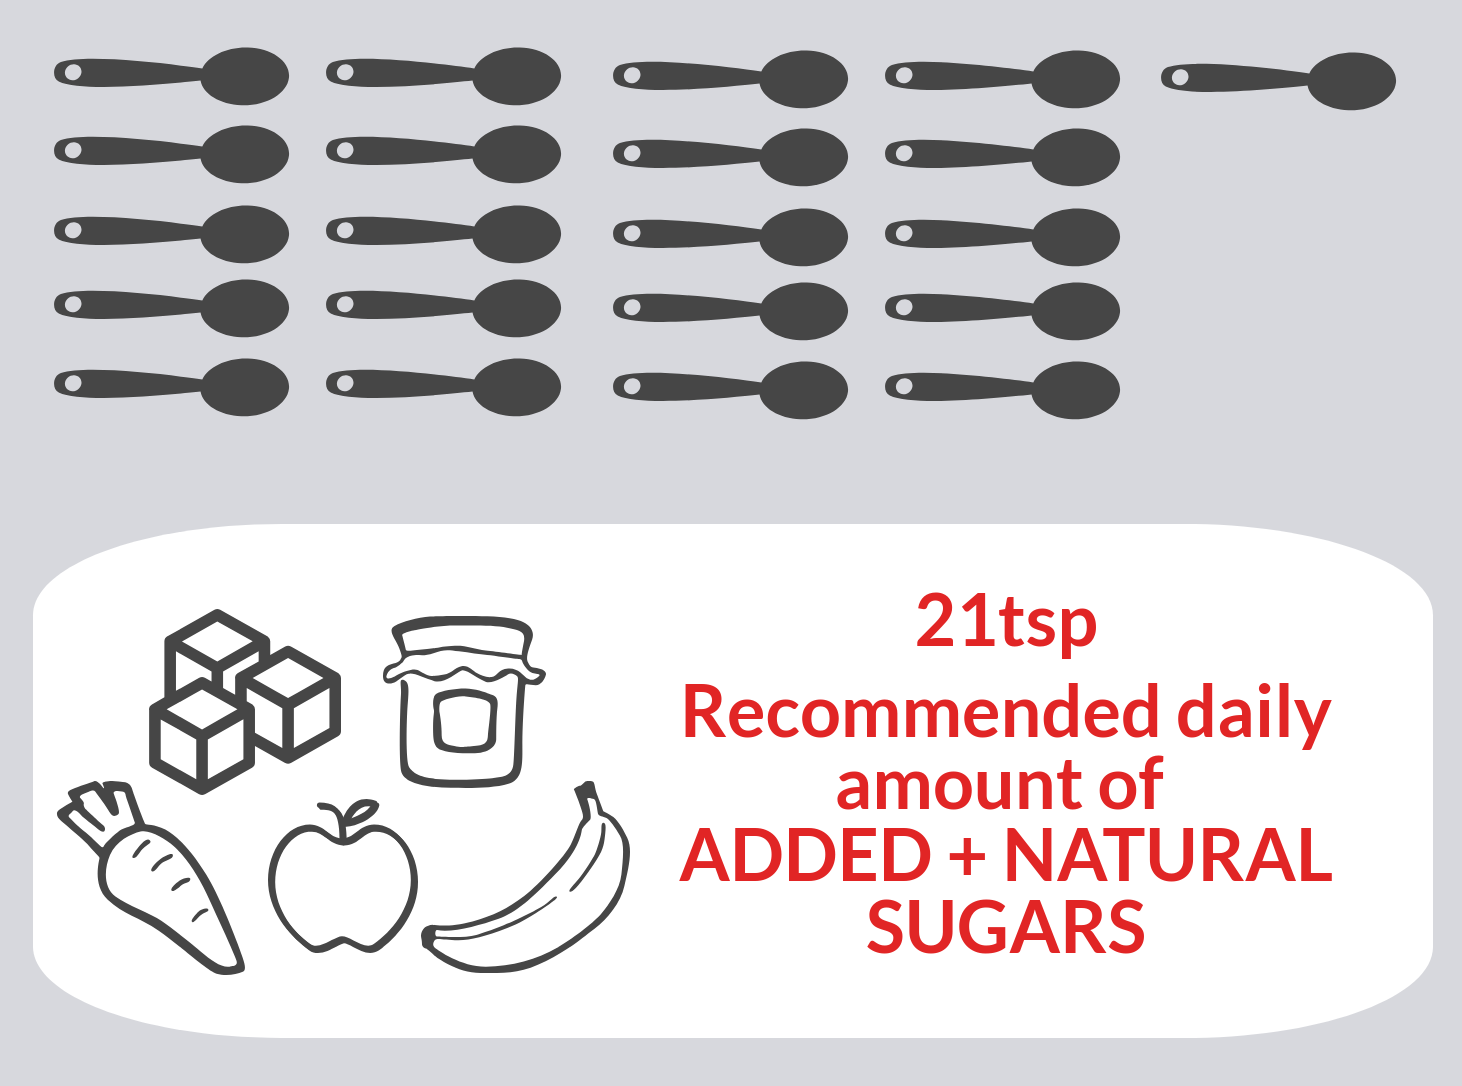 21 teaspoons RDA of total sugars